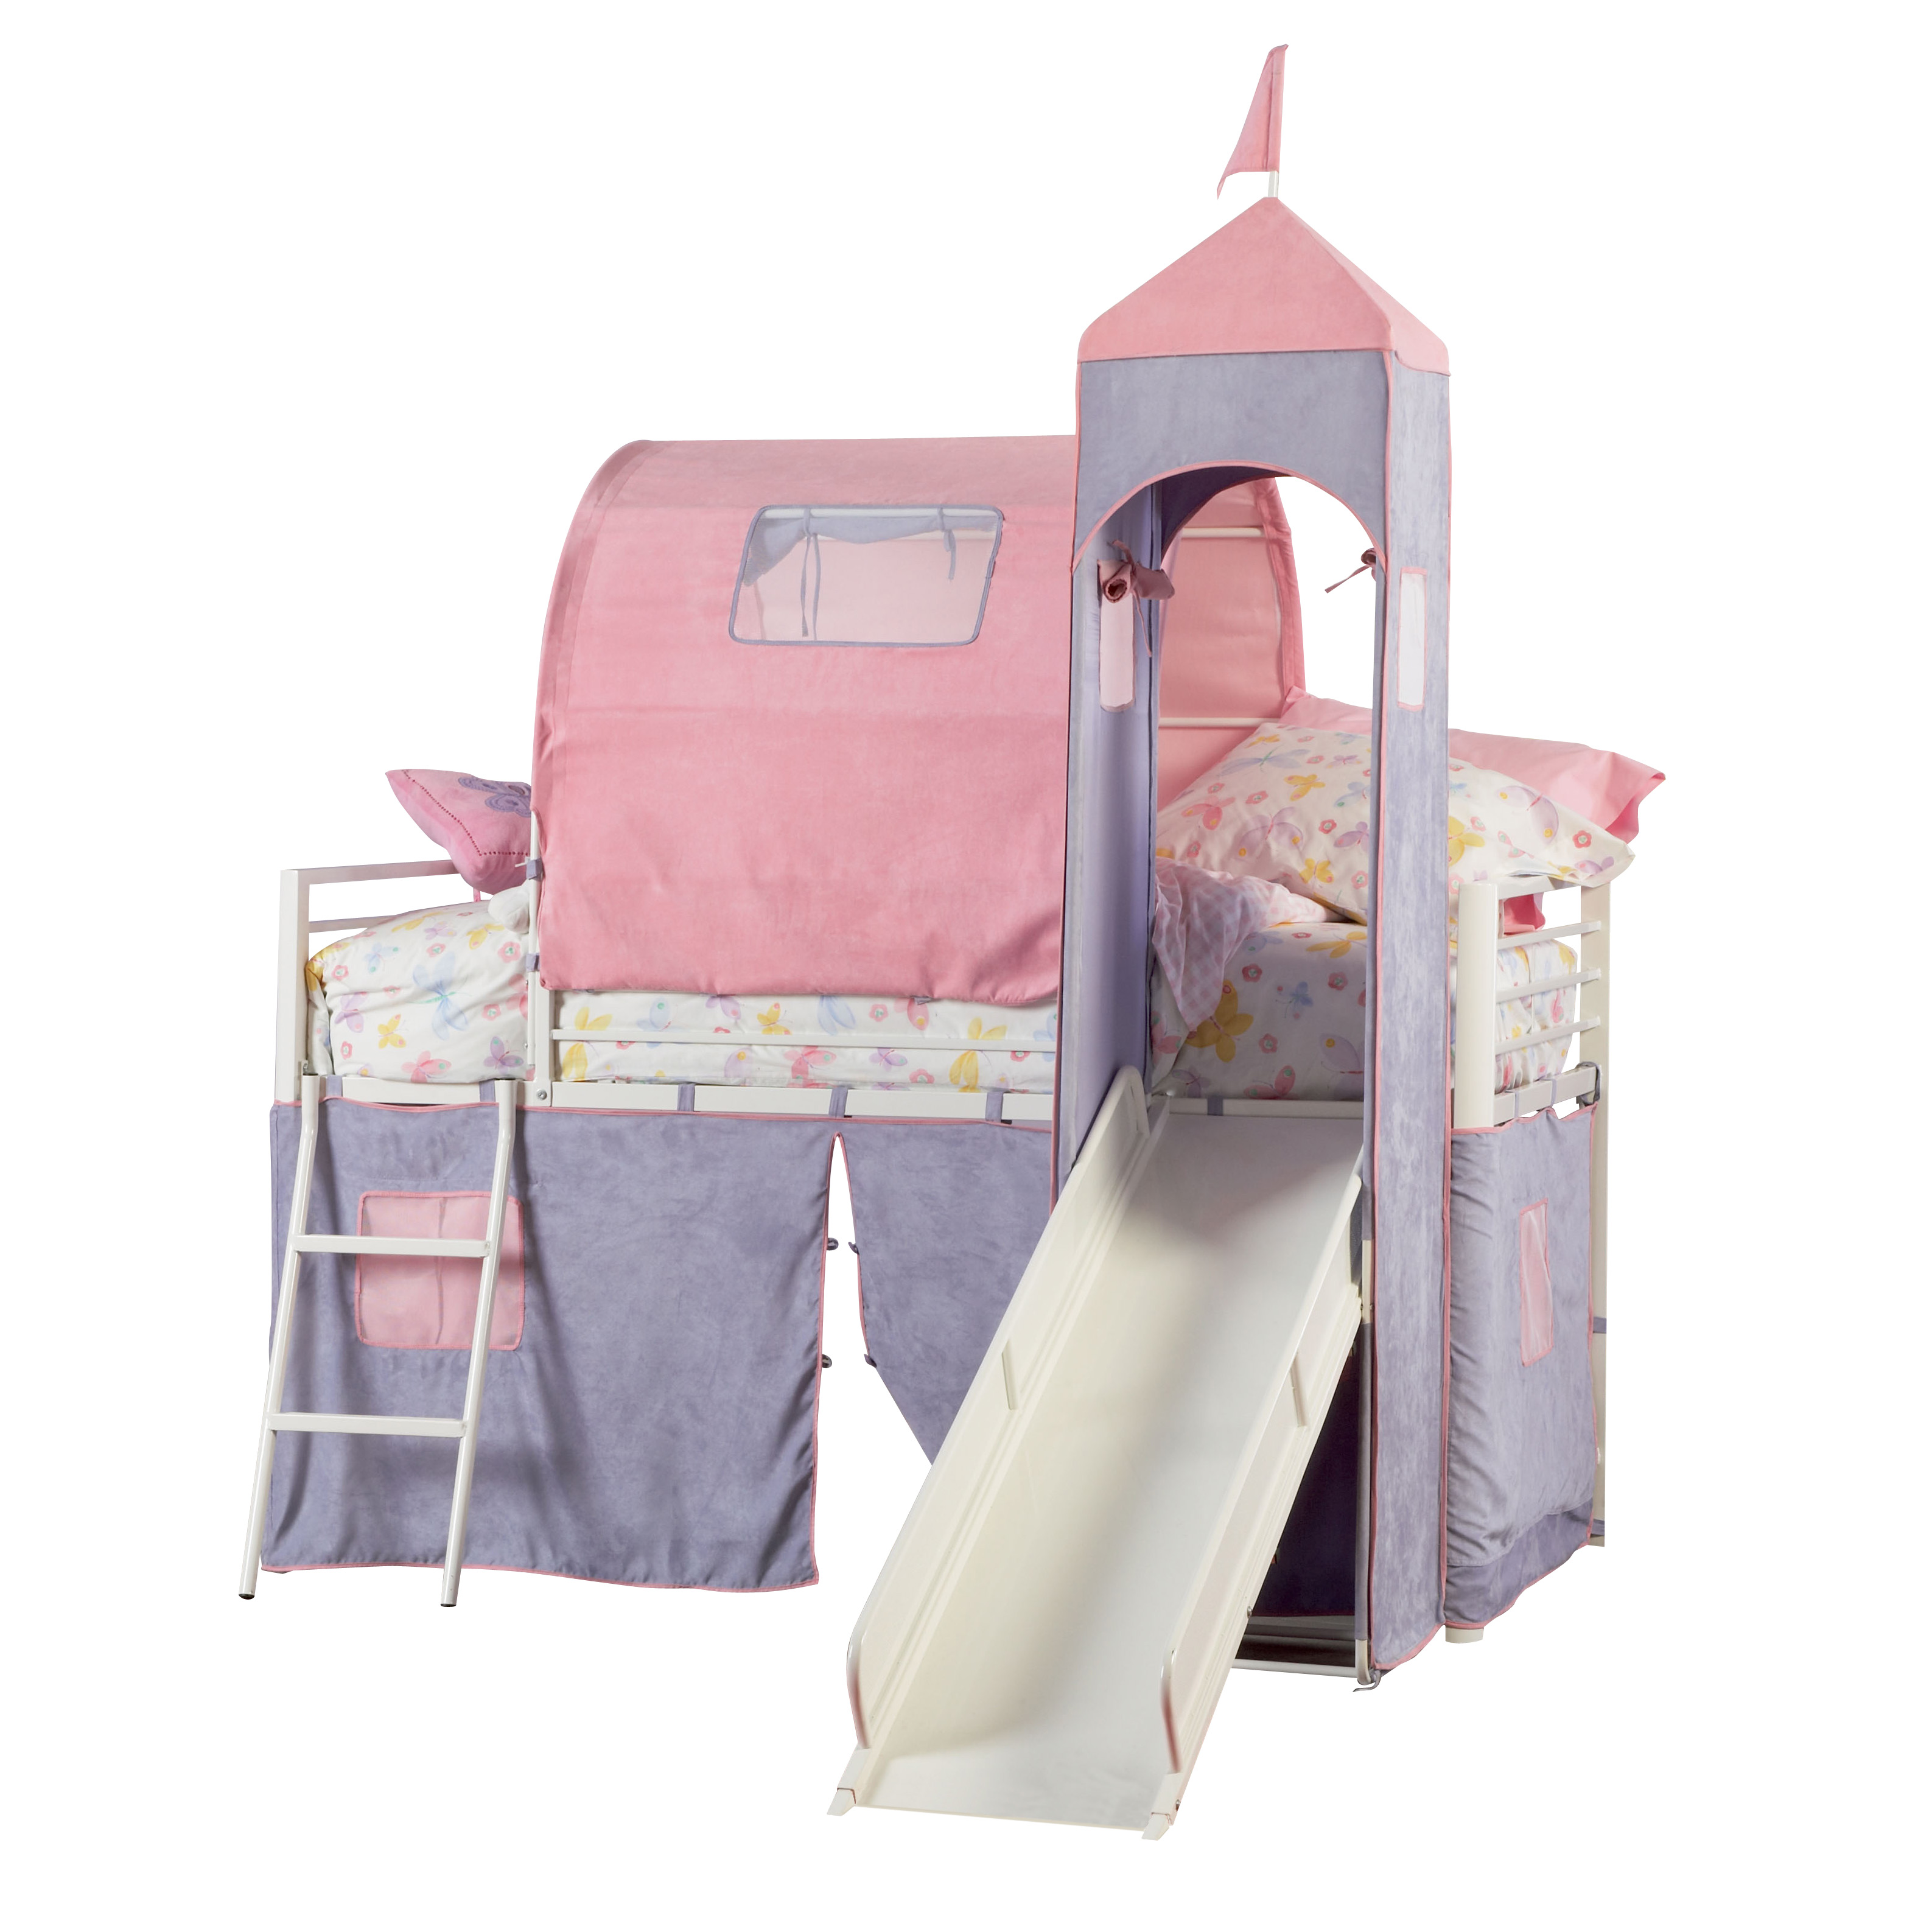 powell princess castle twin size tent bunk bed with slide by oj commerce 374 069. Black Bedroom Furniture Sets. Home Design Ideas